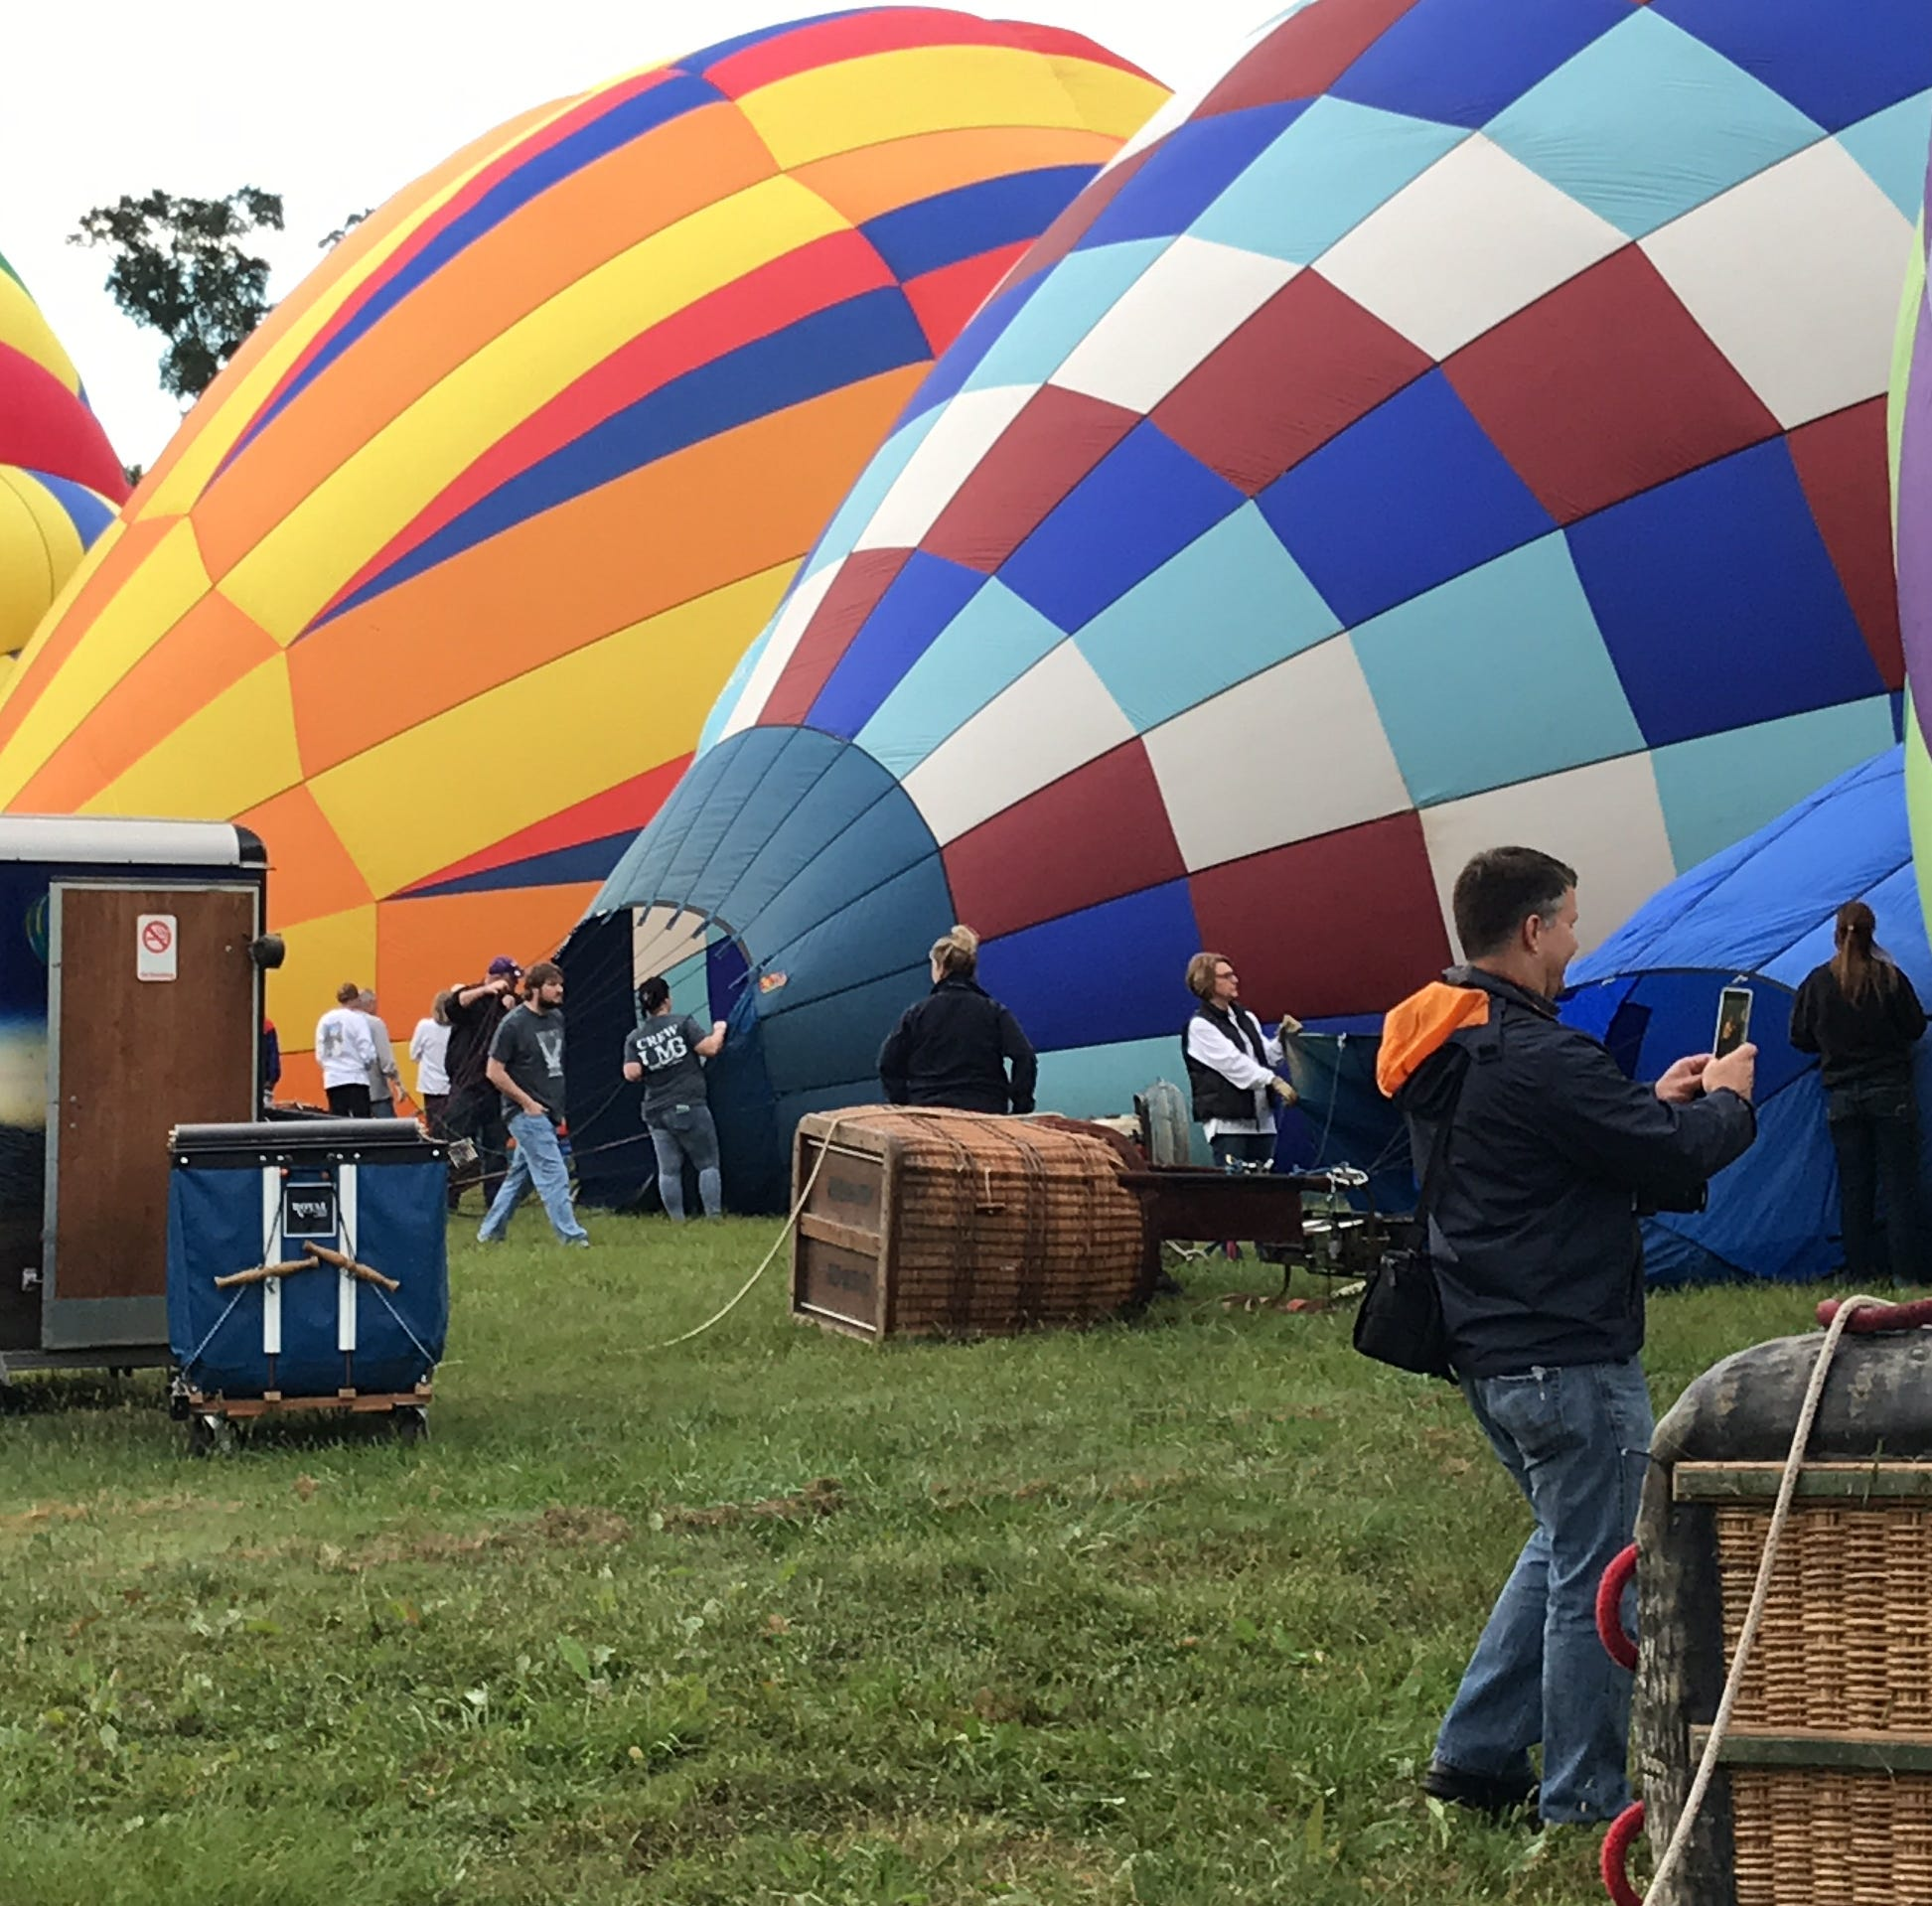 Balloon pilots go up, up and away for annual Natchez celebration